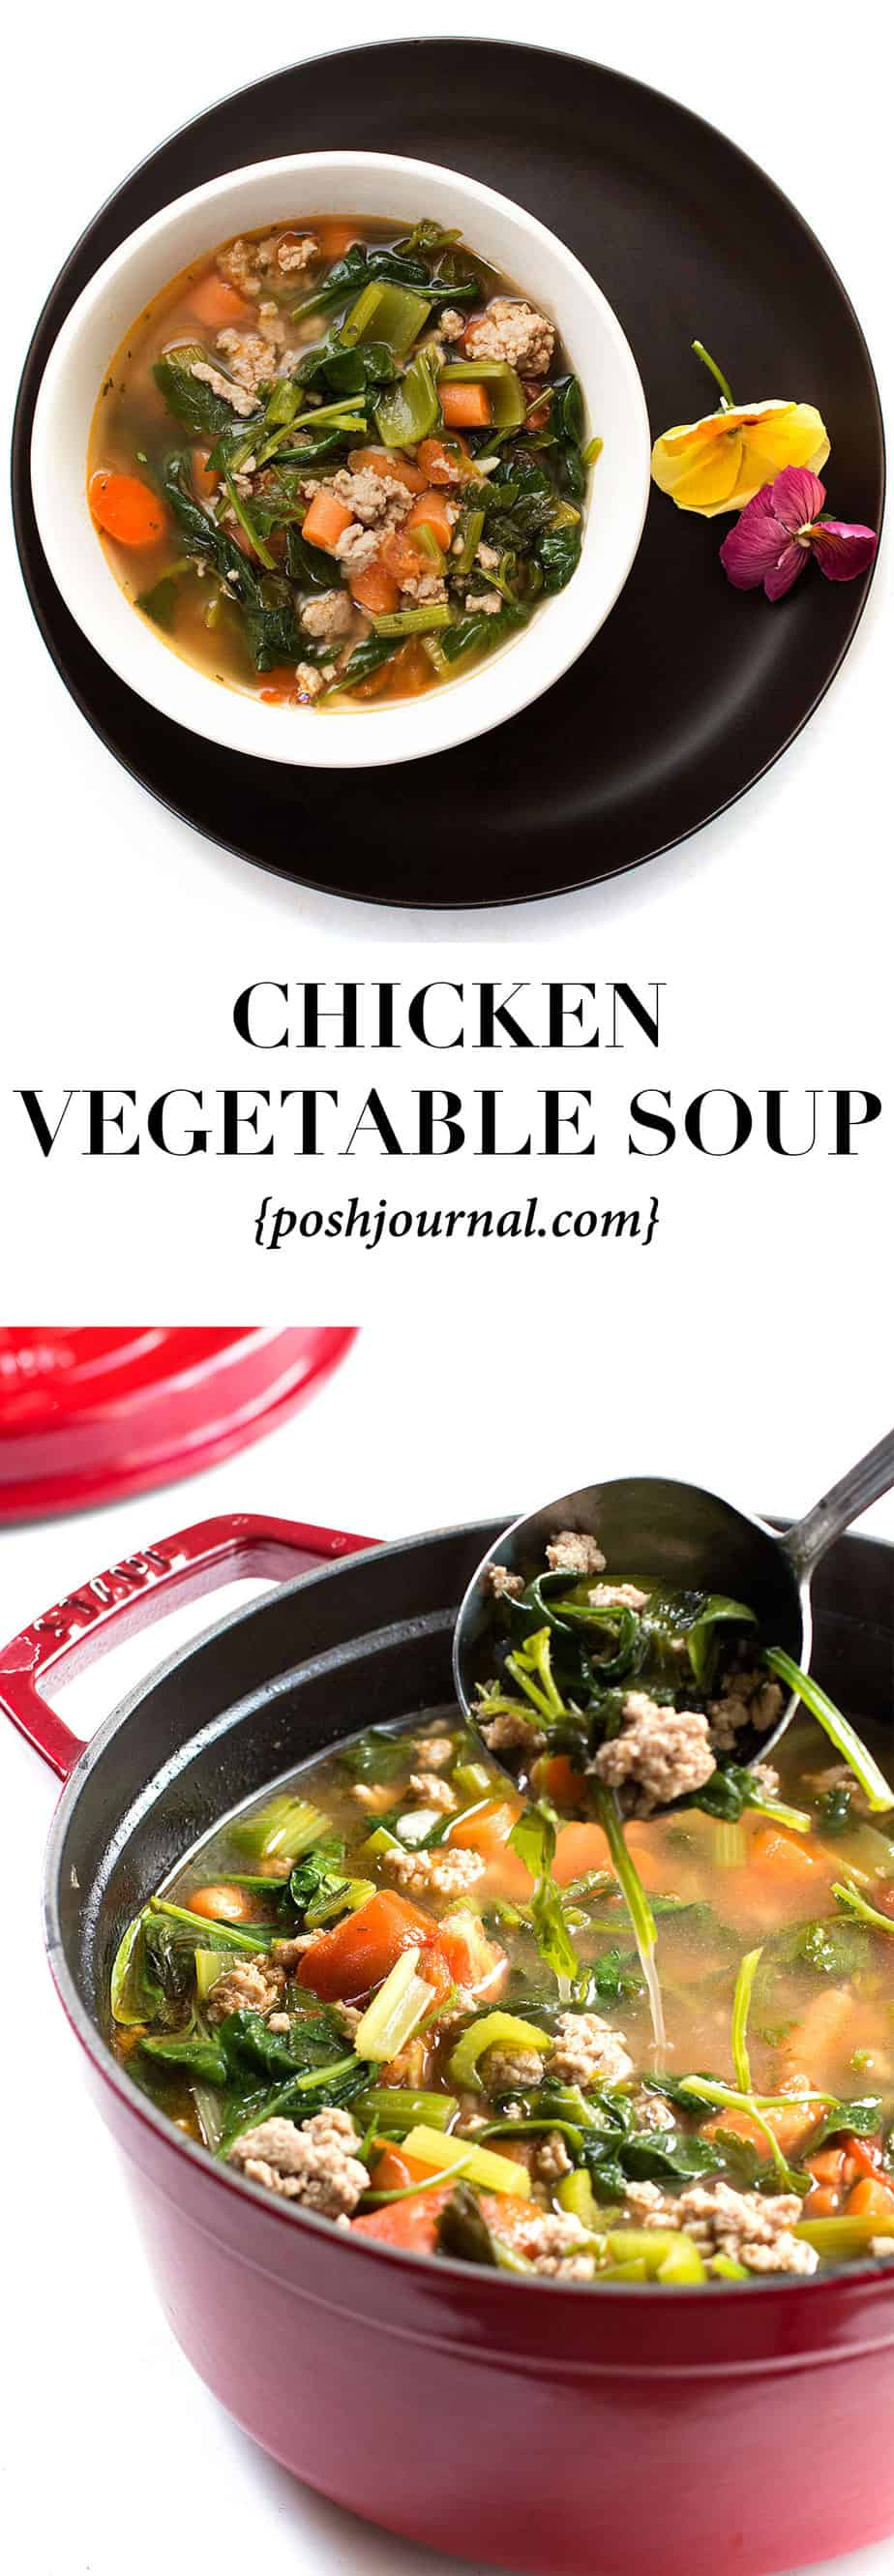 chicken vegetable soup. Quick soup recipe, comfort food, ready in less than 1 hour. The ground chicken seasoned perfectly with homemade poultry seasoning. Healthy and flavorful broth made of fresh ingredients : celery, carrots, spinach